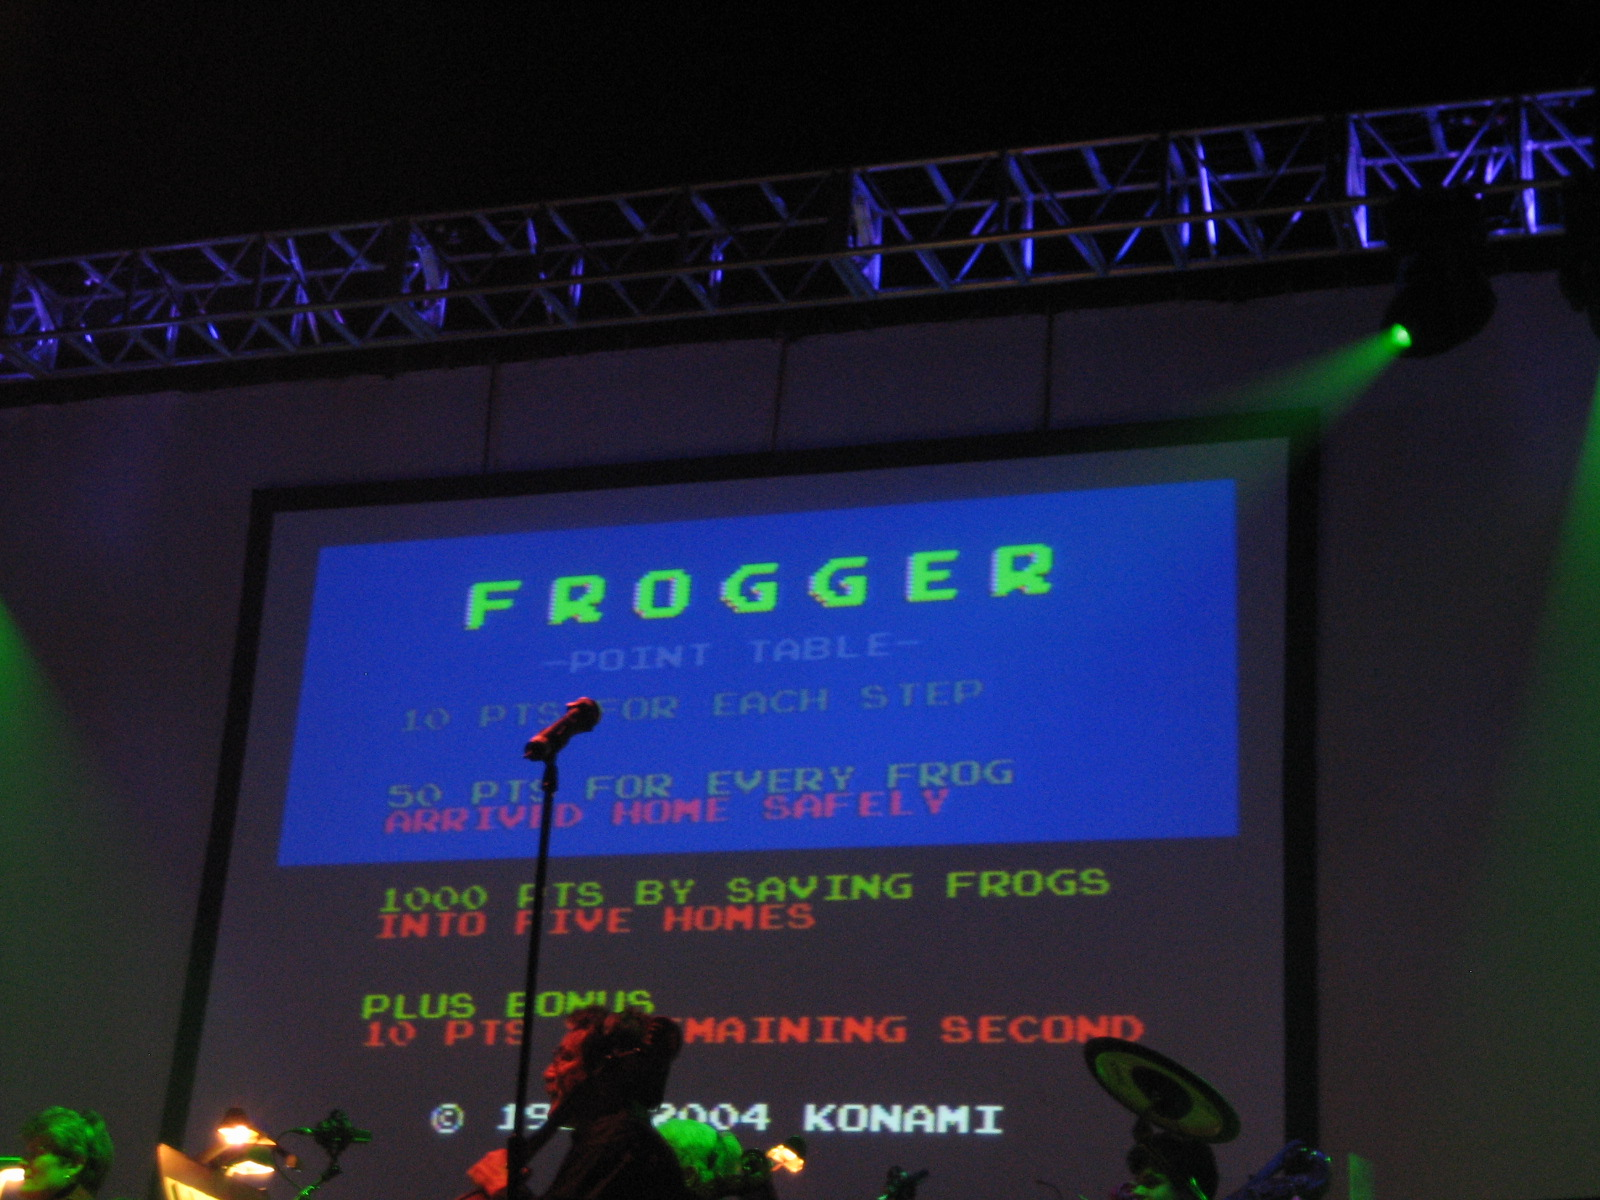 Frogger at Video Games Live.jpg English: Music of 1981 arcade game Frogger being played at Video Games Live in 2006. Date 24 March 2006, 21:29:55